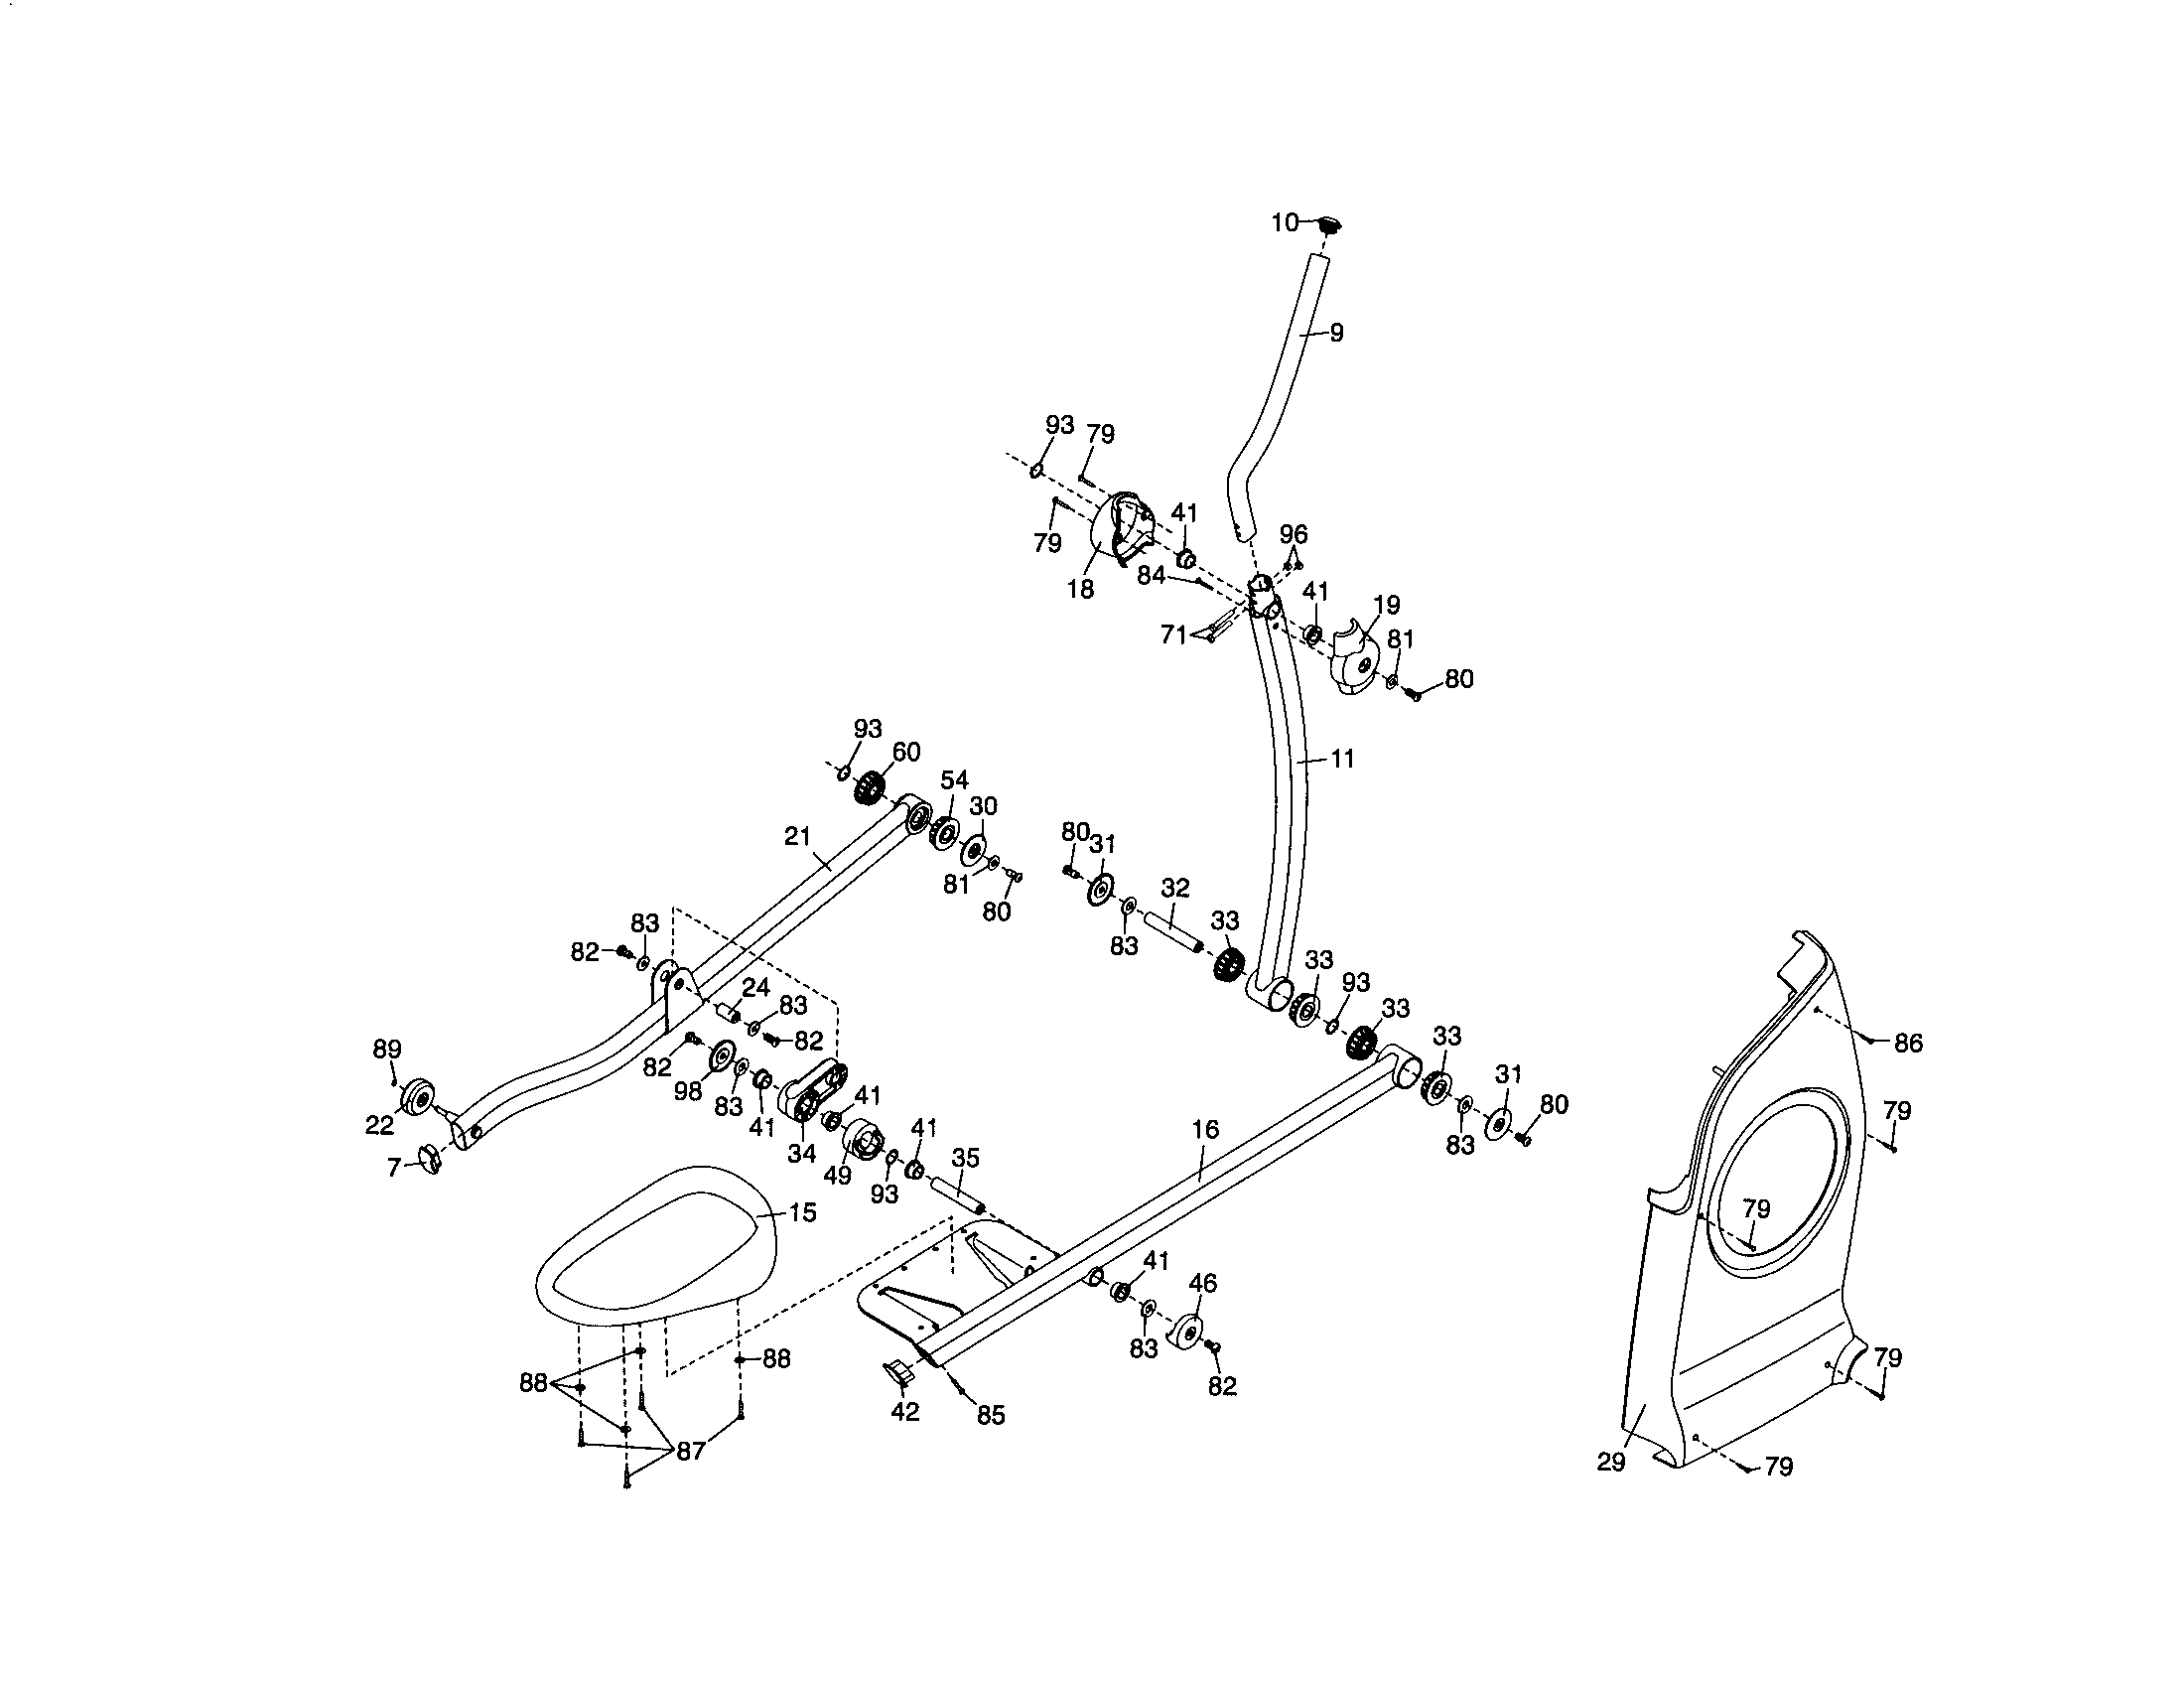 Proform 831237450 right pedal/side shield/upright diagram